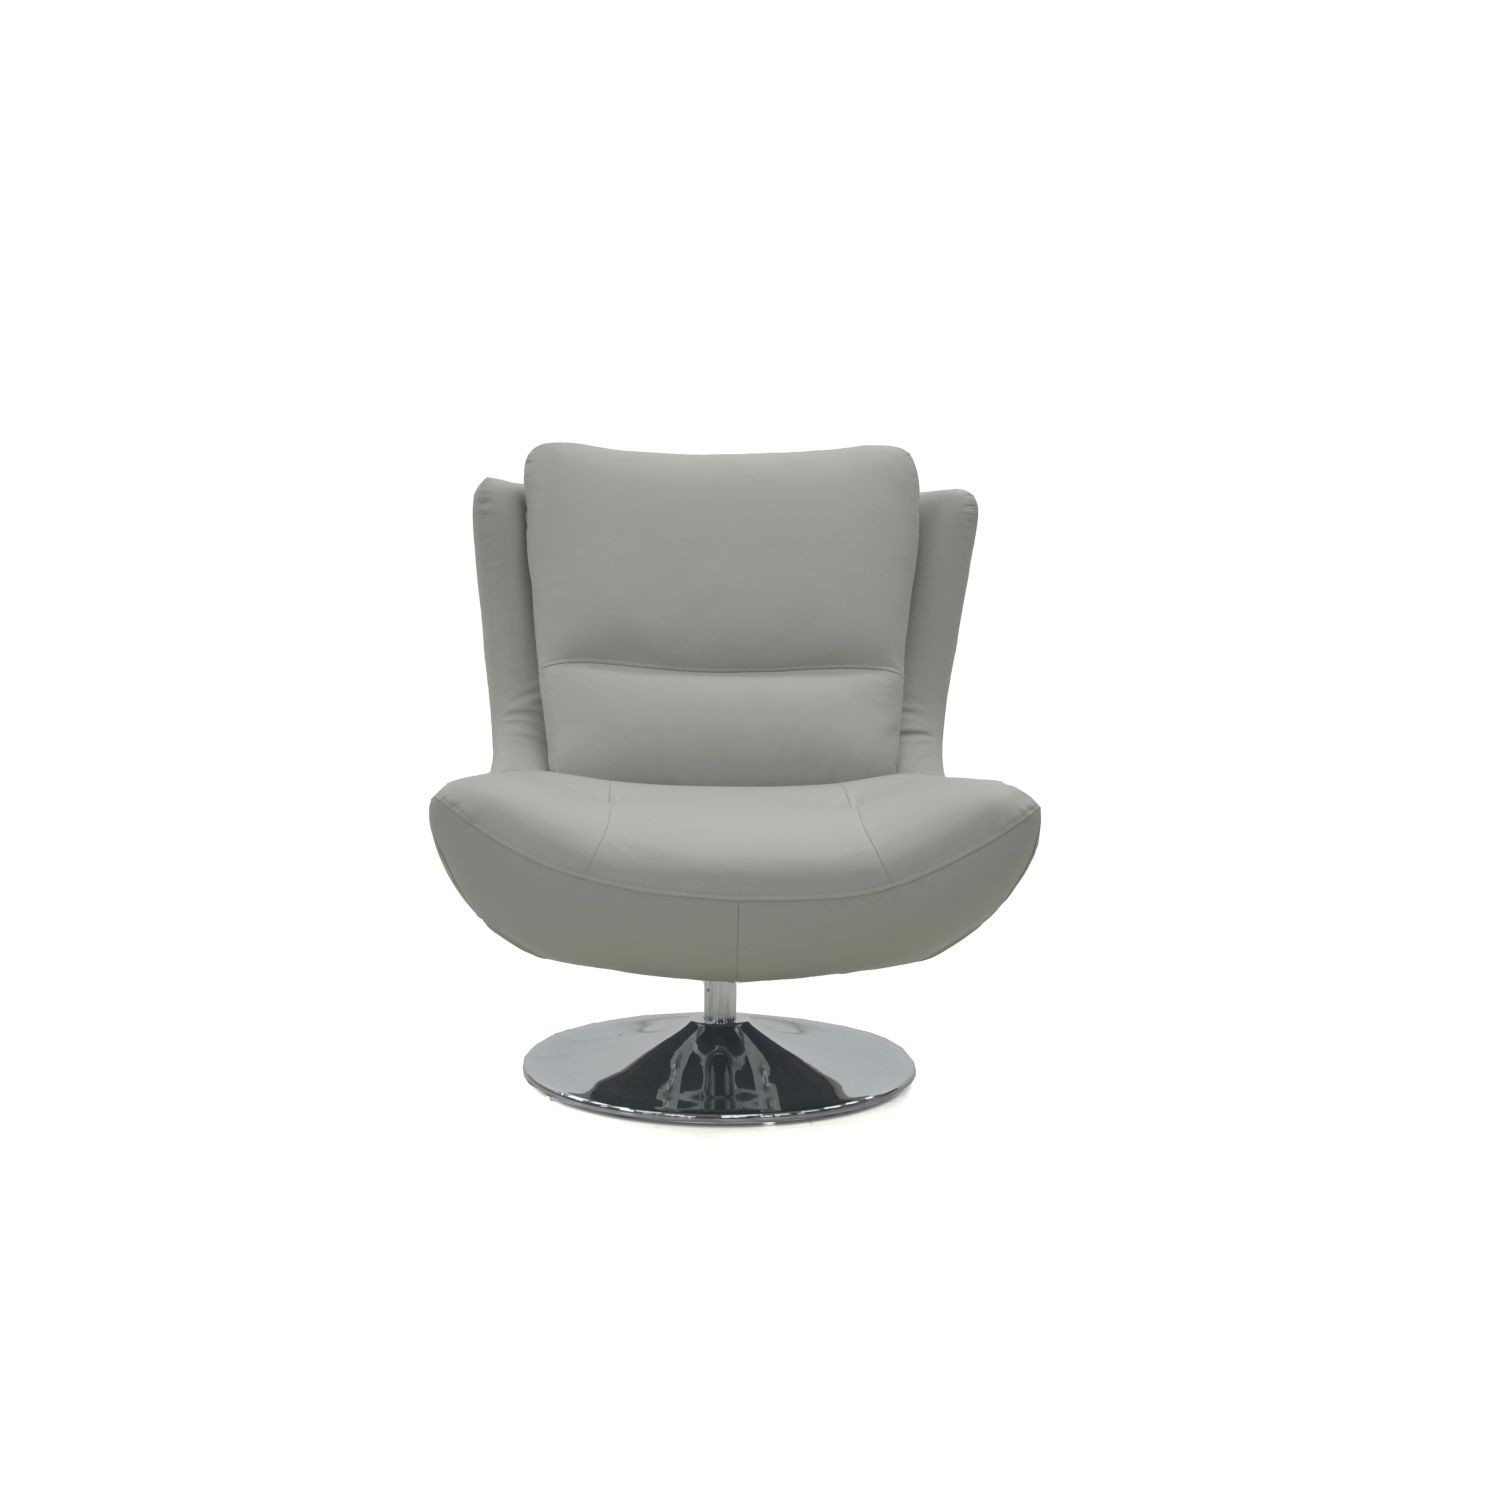 swivel chair the range stand test reference values celia